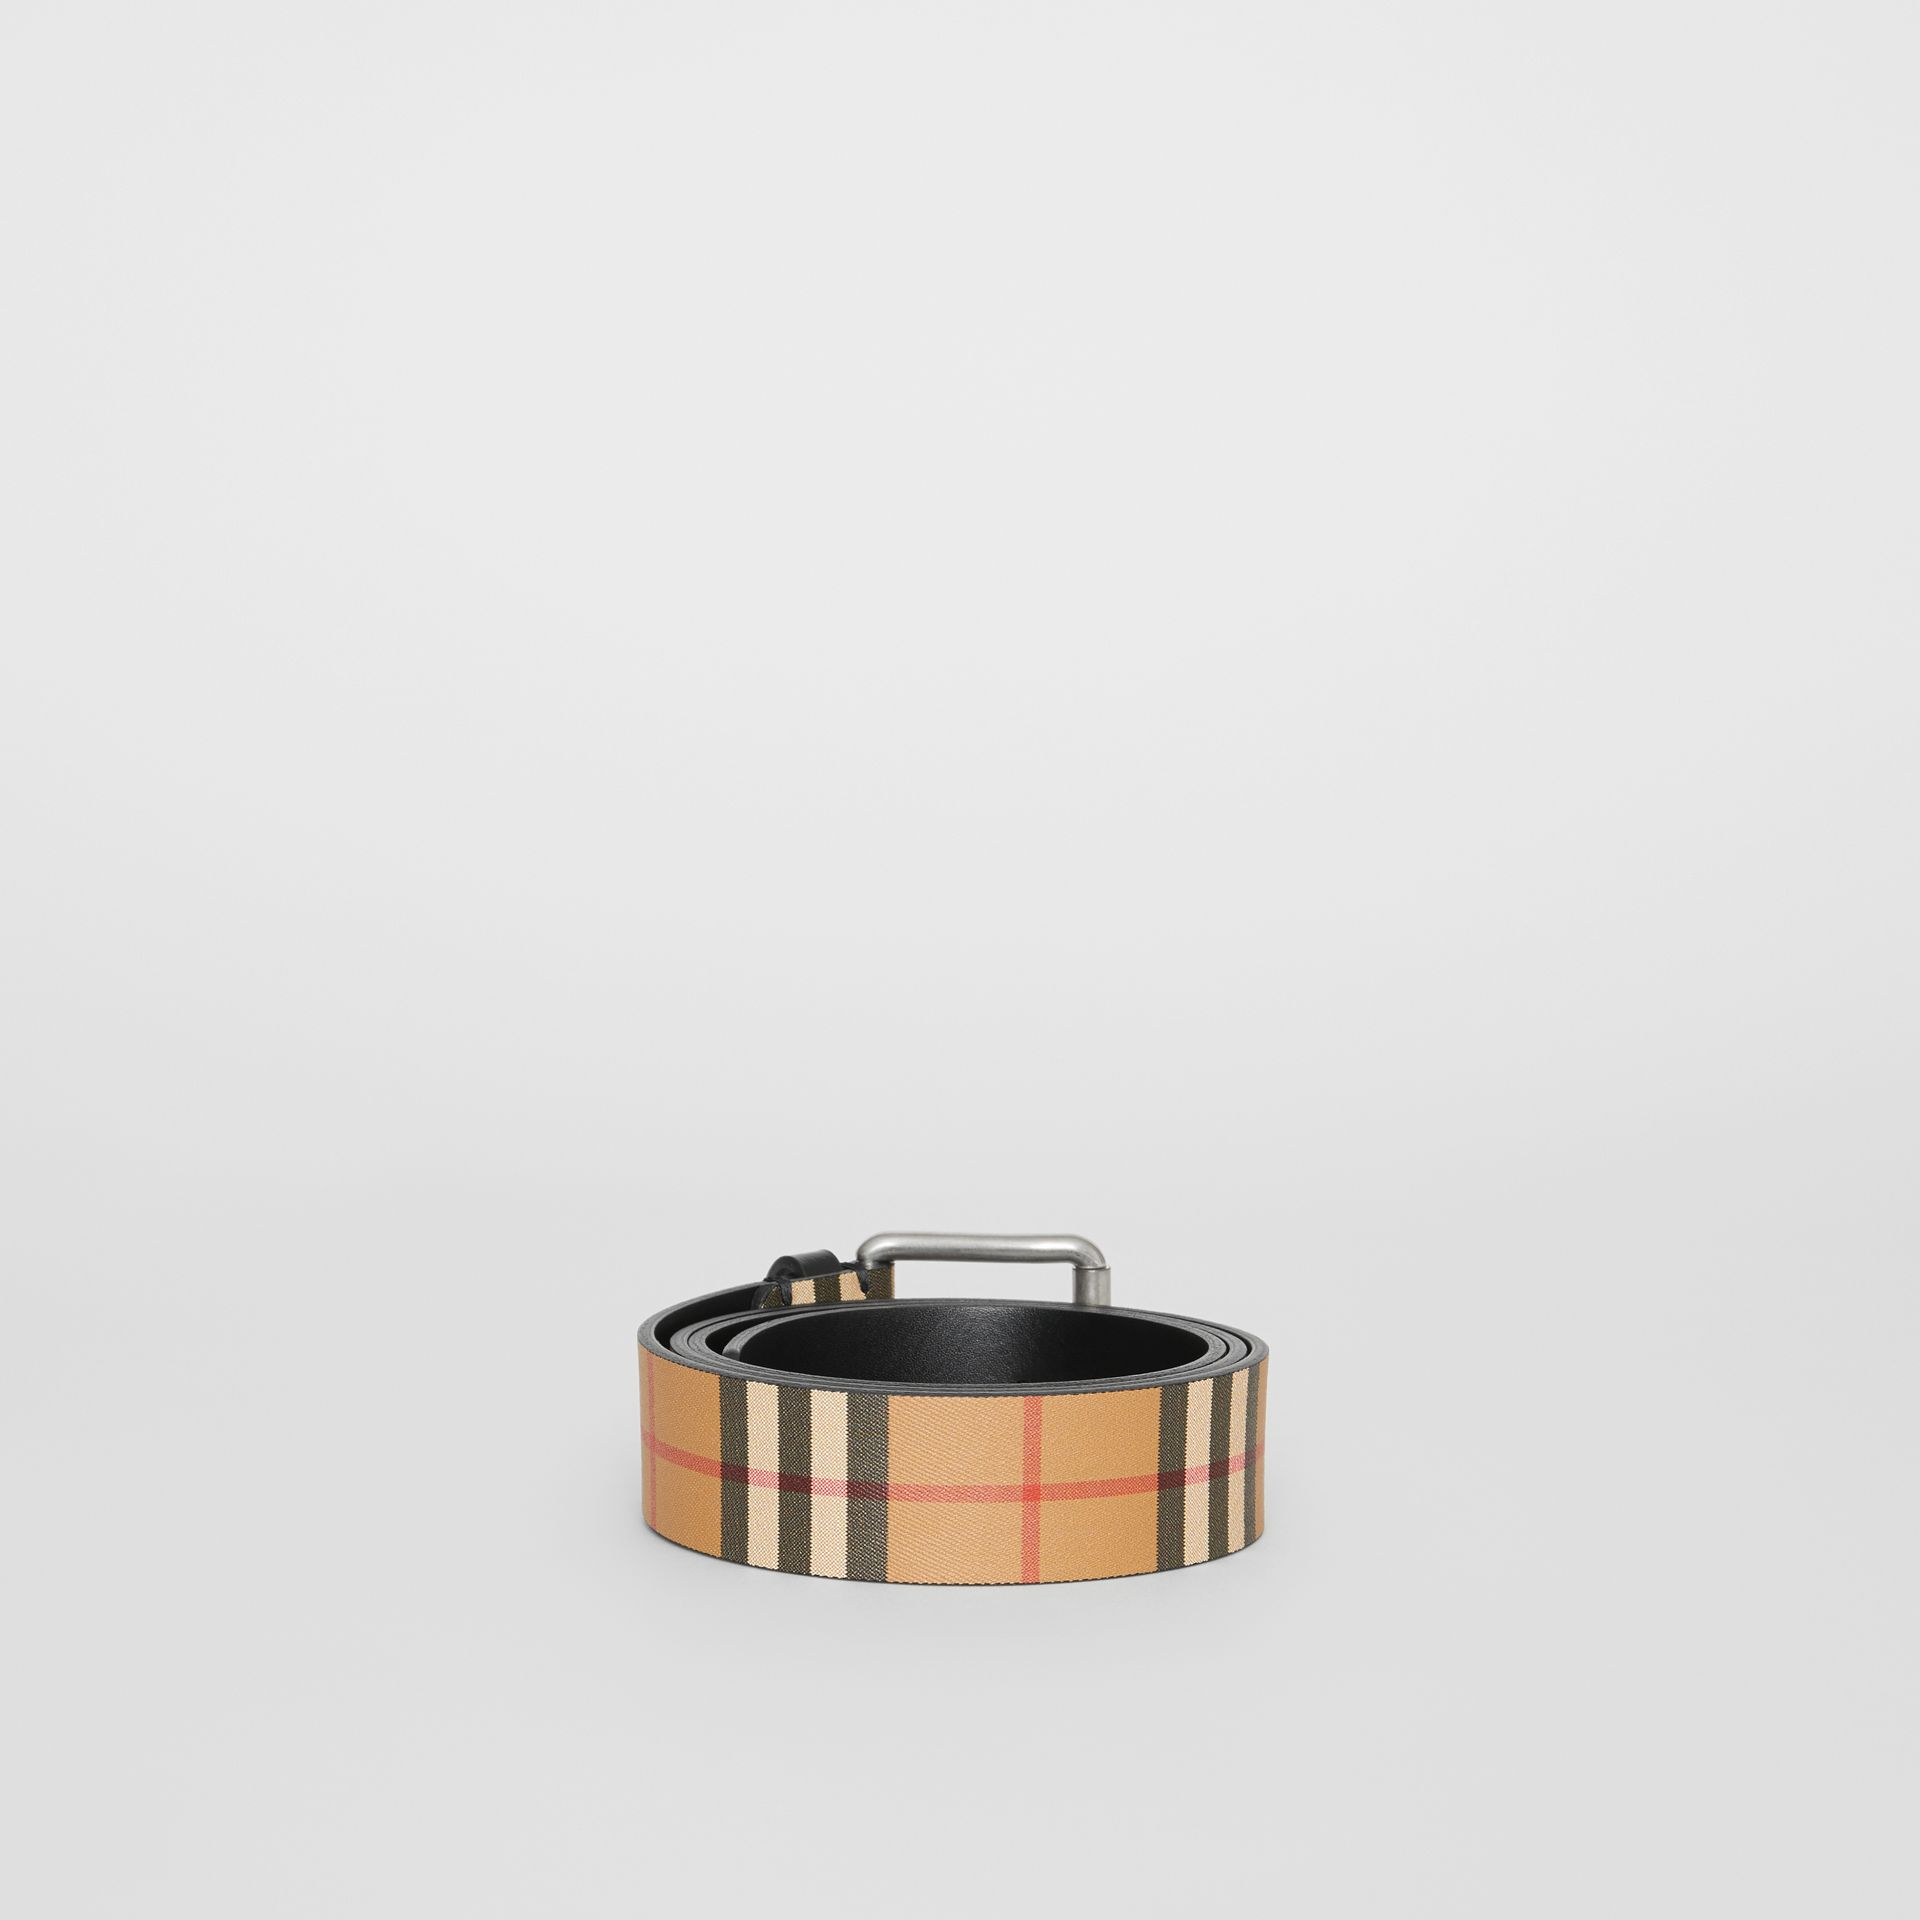 Vintage Check Leather Belt in Black - Men | Burberry Canada - gallery image 4